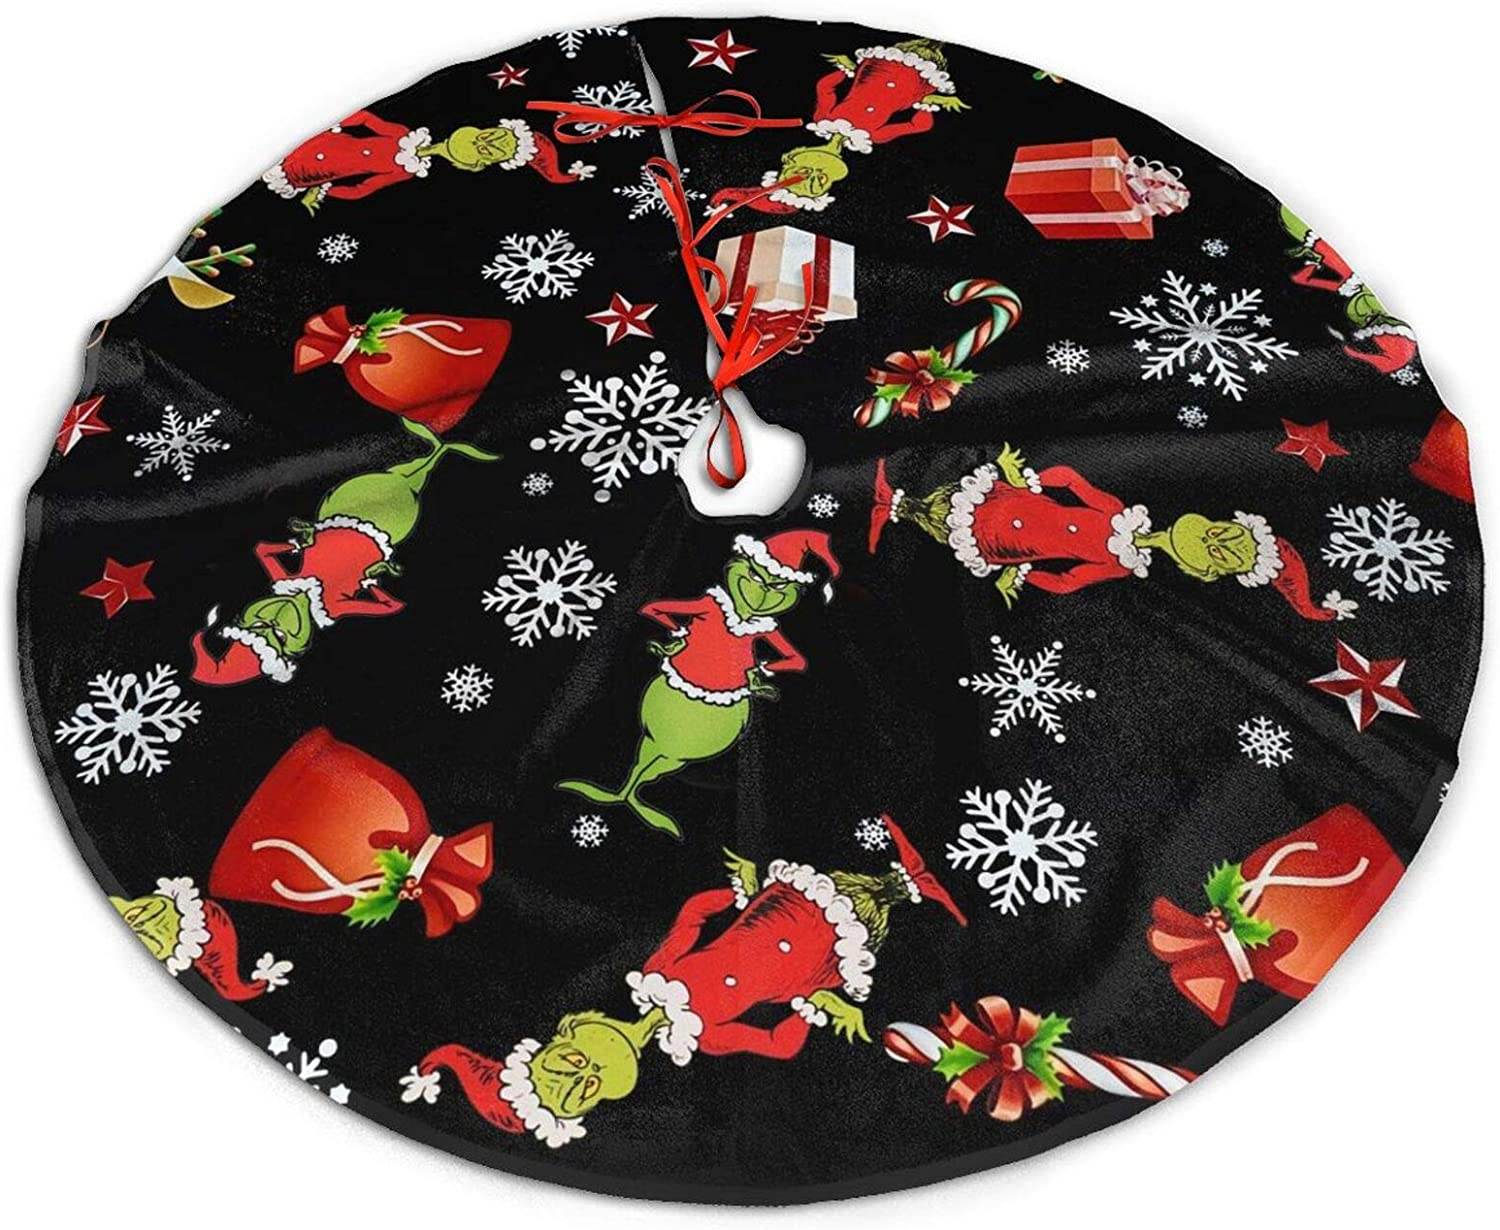 Funny Raleigh Mall Lightweight Merry Christmas Tree Easy Put XmasH to Max 73% OFF Skirt